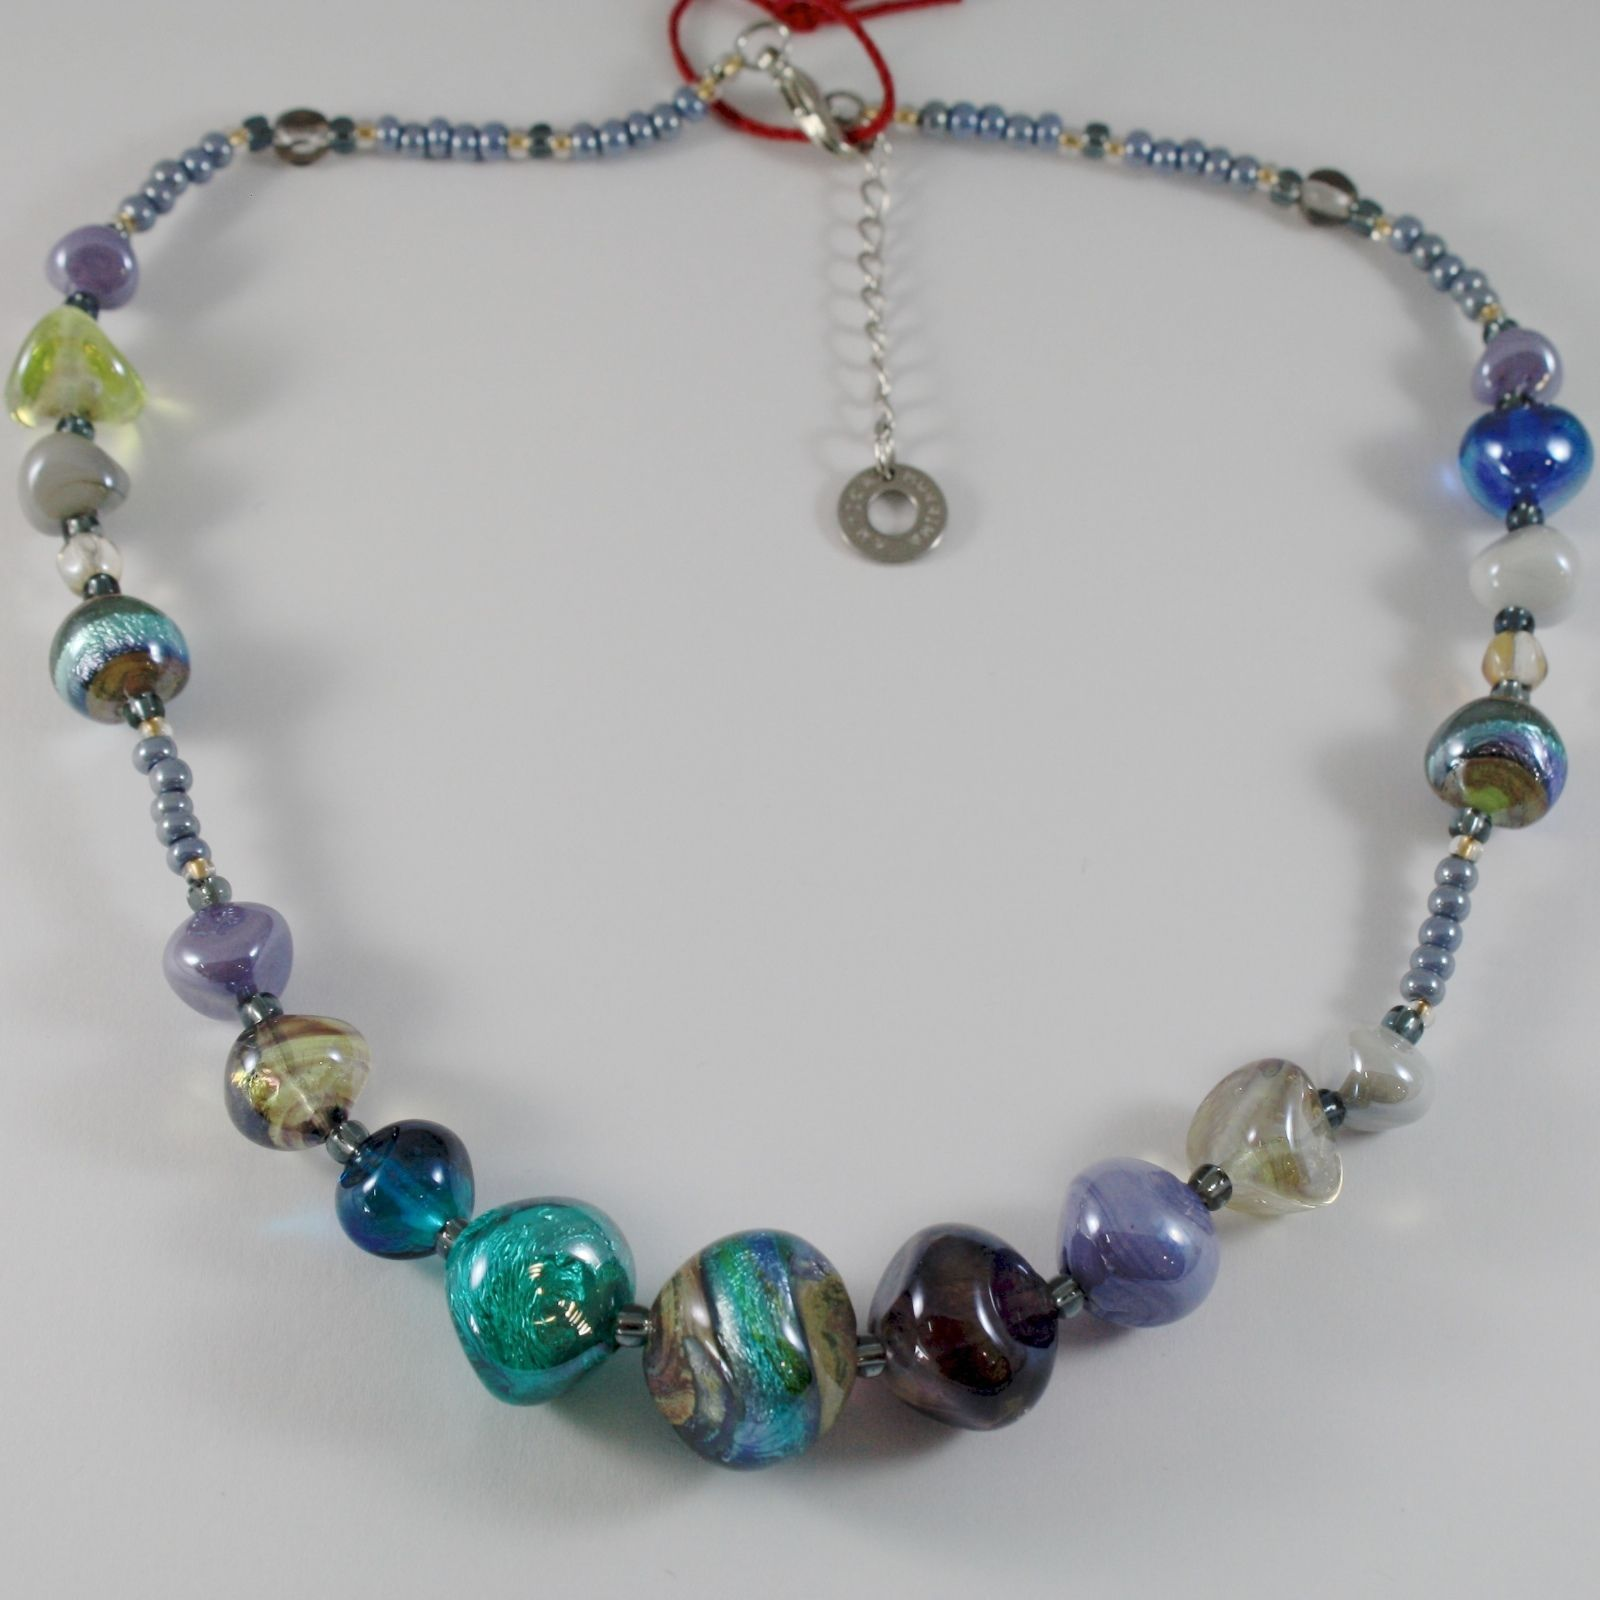 ANTICA MURRINA VENEZIA NECKLACE MULTICOLOR BIG AMETHYST AND GREEN NUGGETS